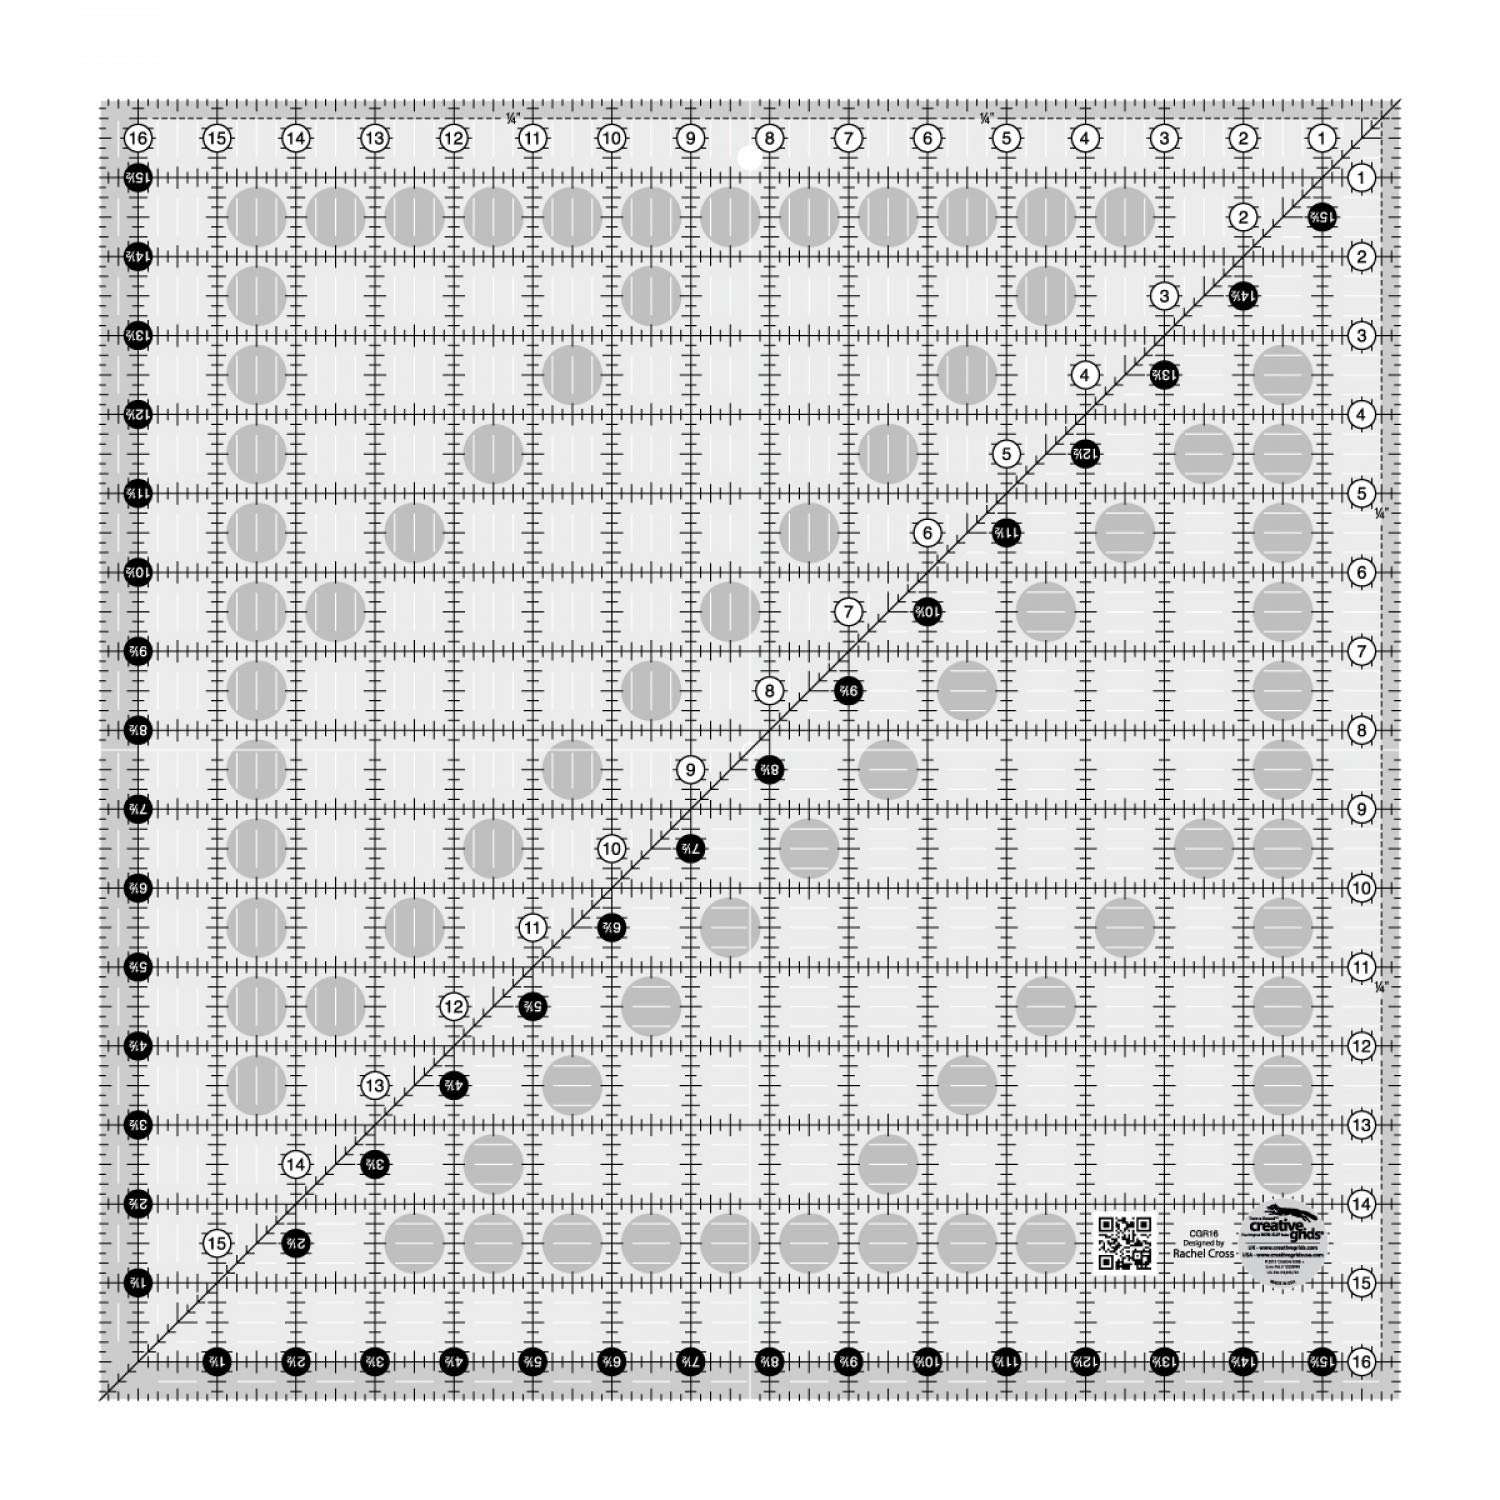 Creative Grids Quilting Ruler 16 1/2 Inch Square (CGR16)